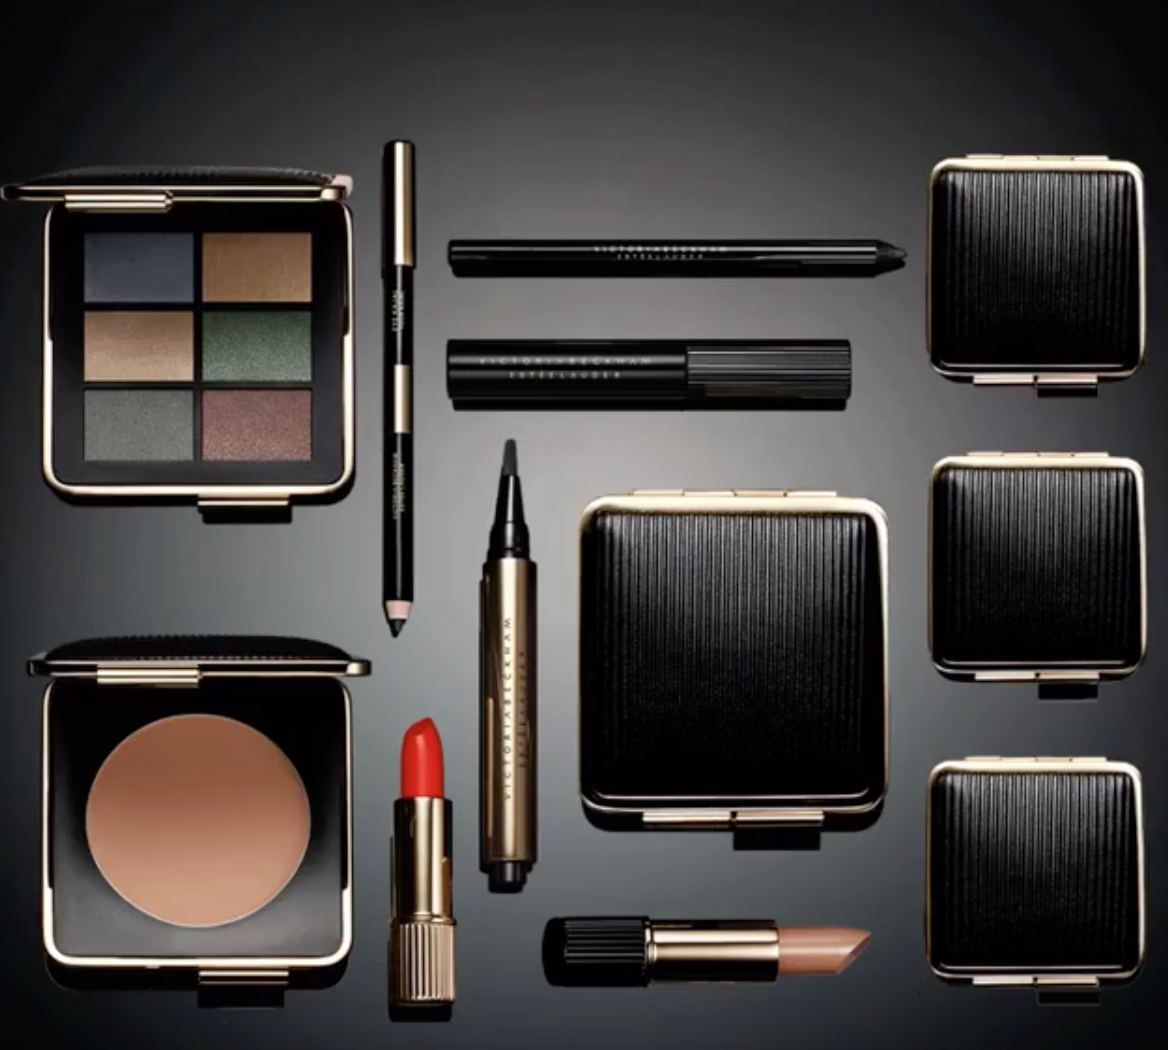 Victoria Beckham launches her own makeup line